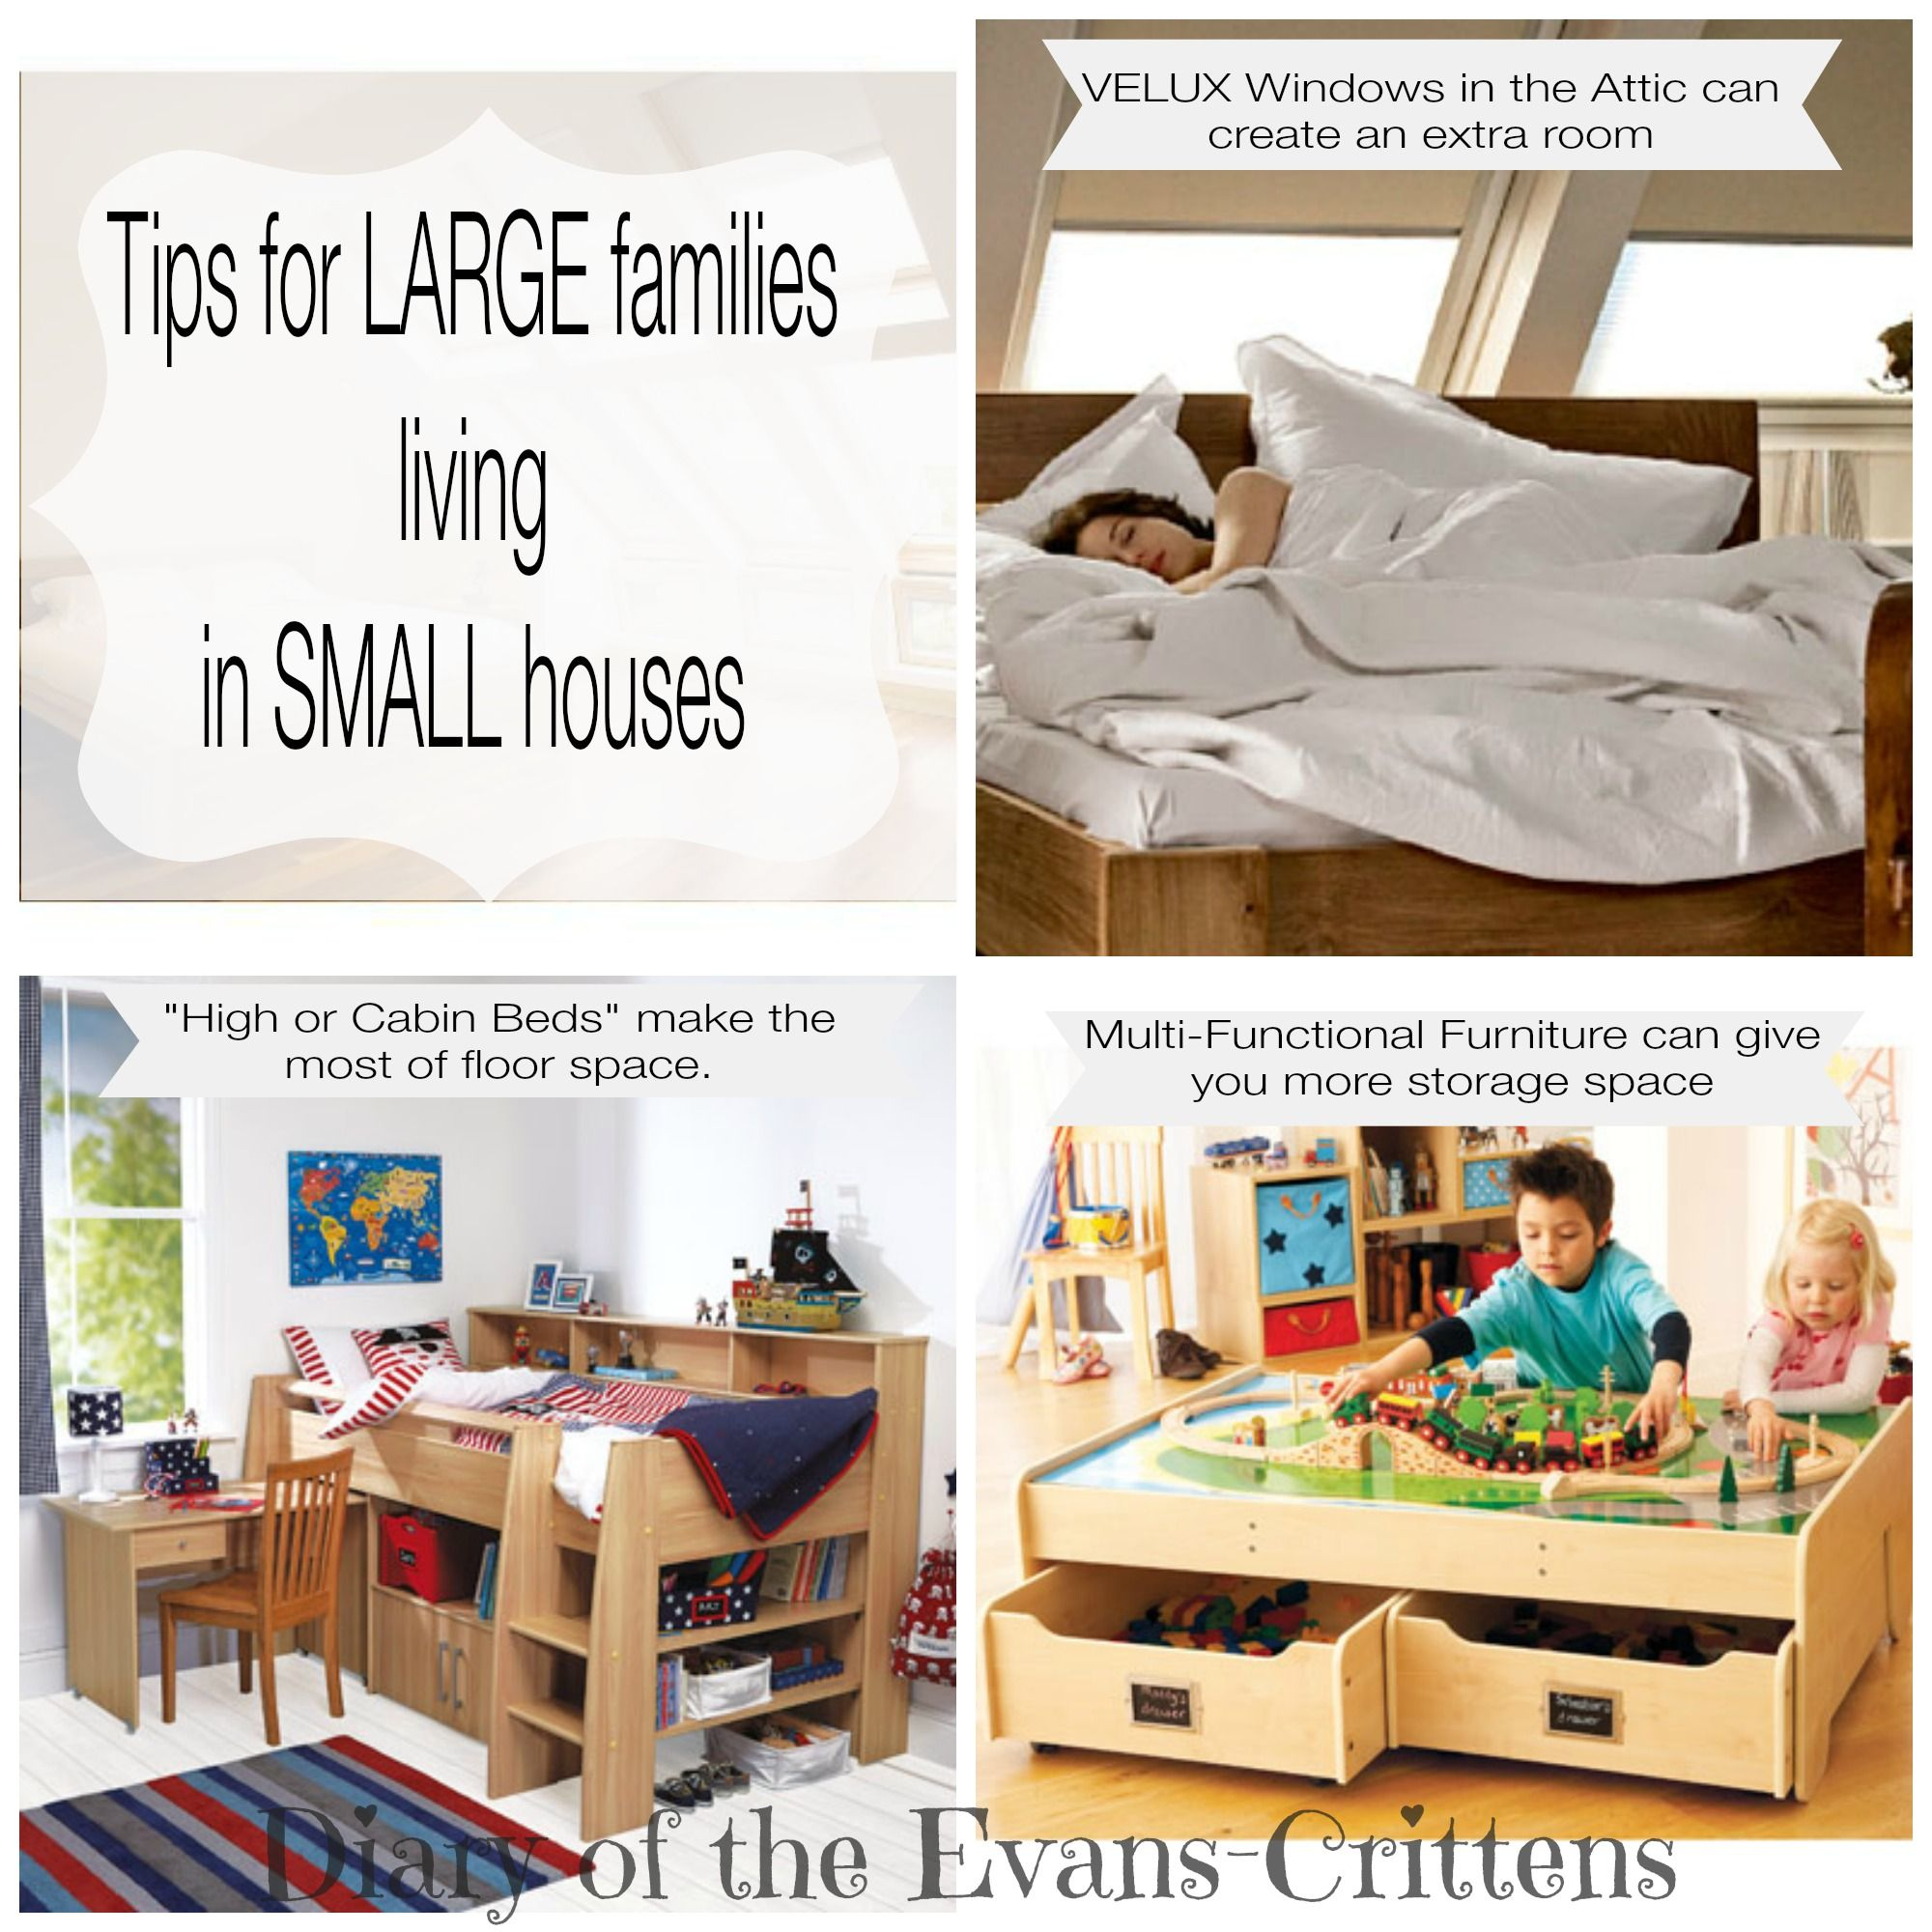 Captivating Tips For A LARGE Family Living In A Small Home. Http://www